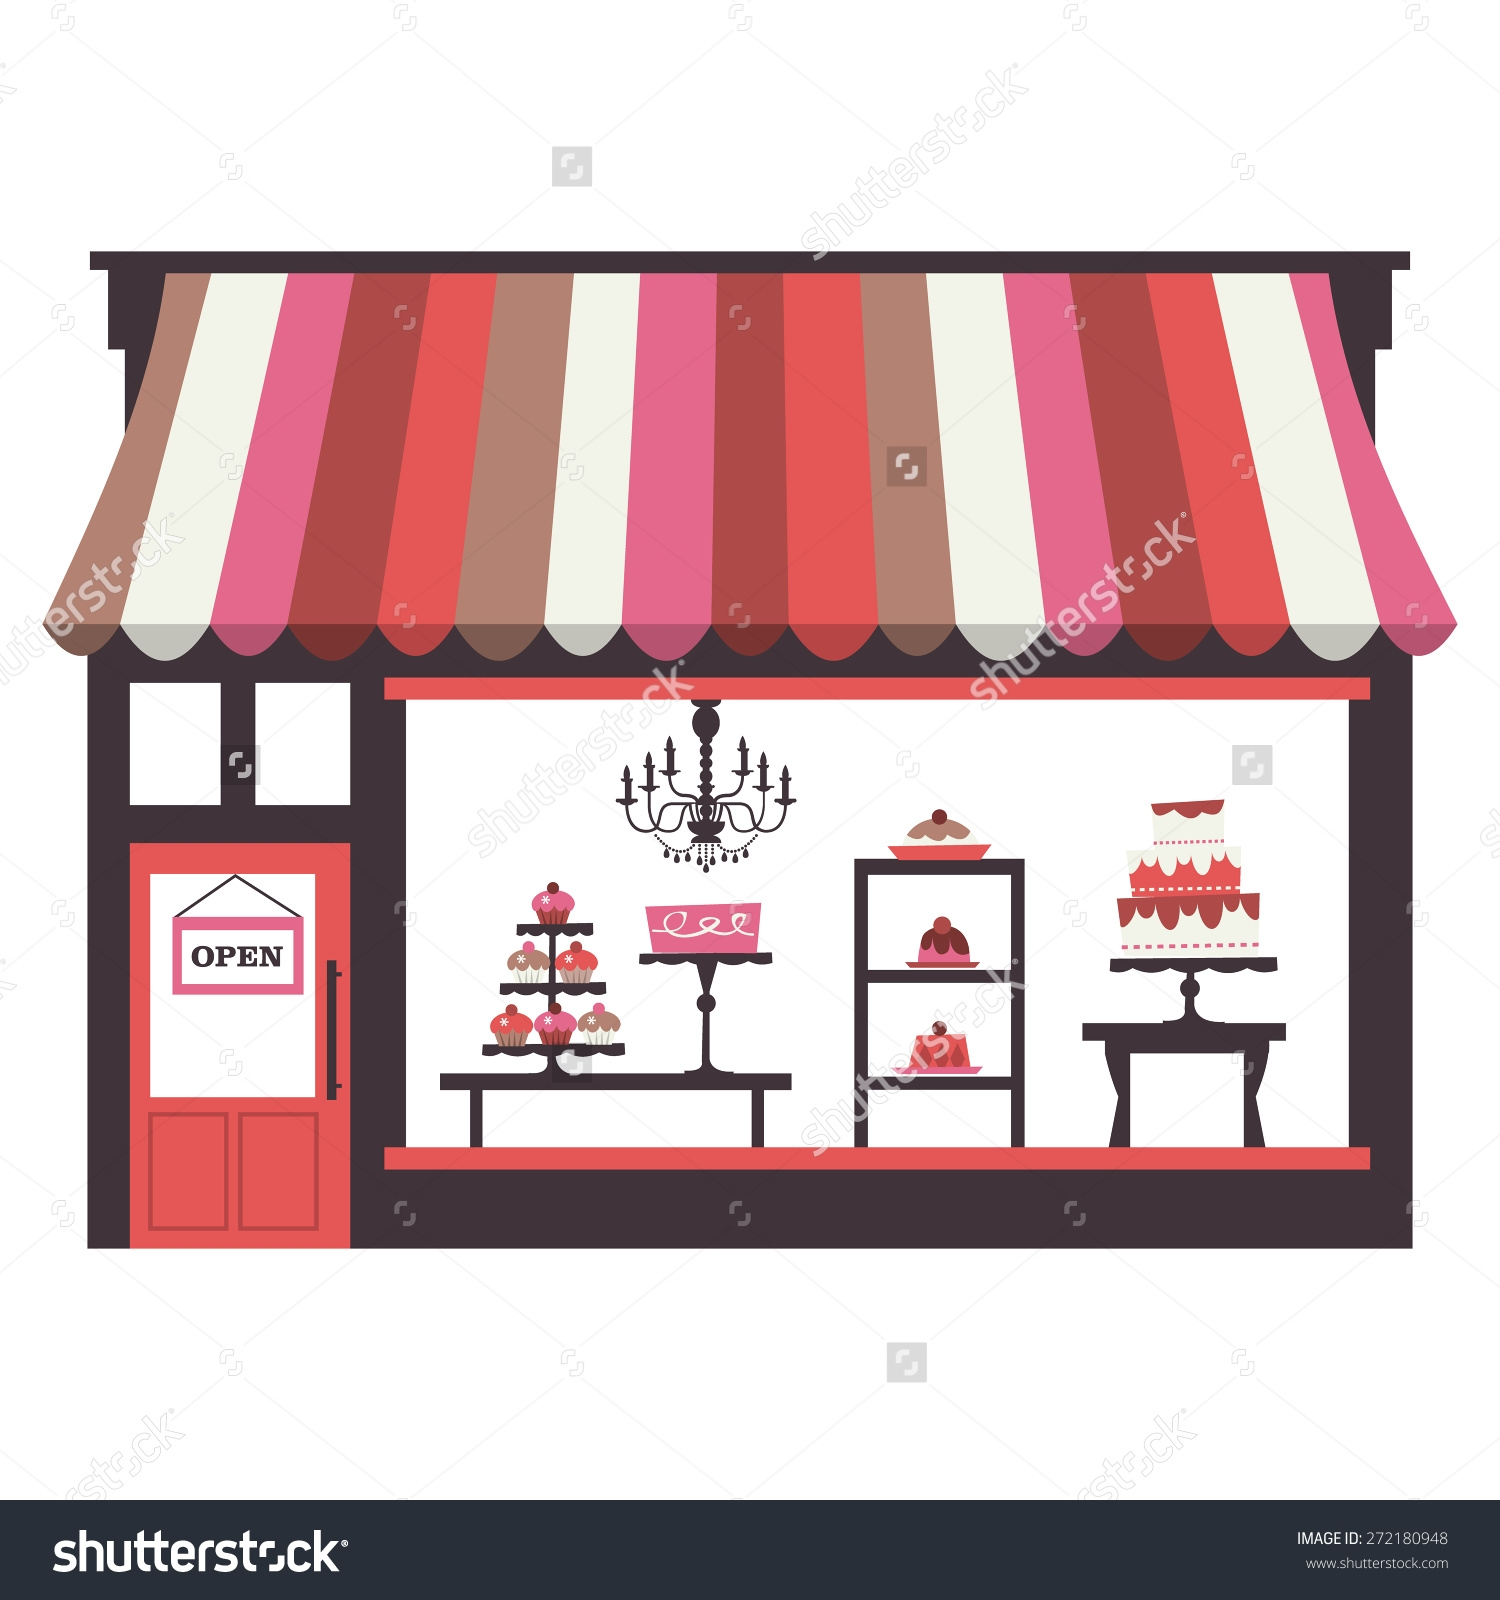 7417 Store free clipart.